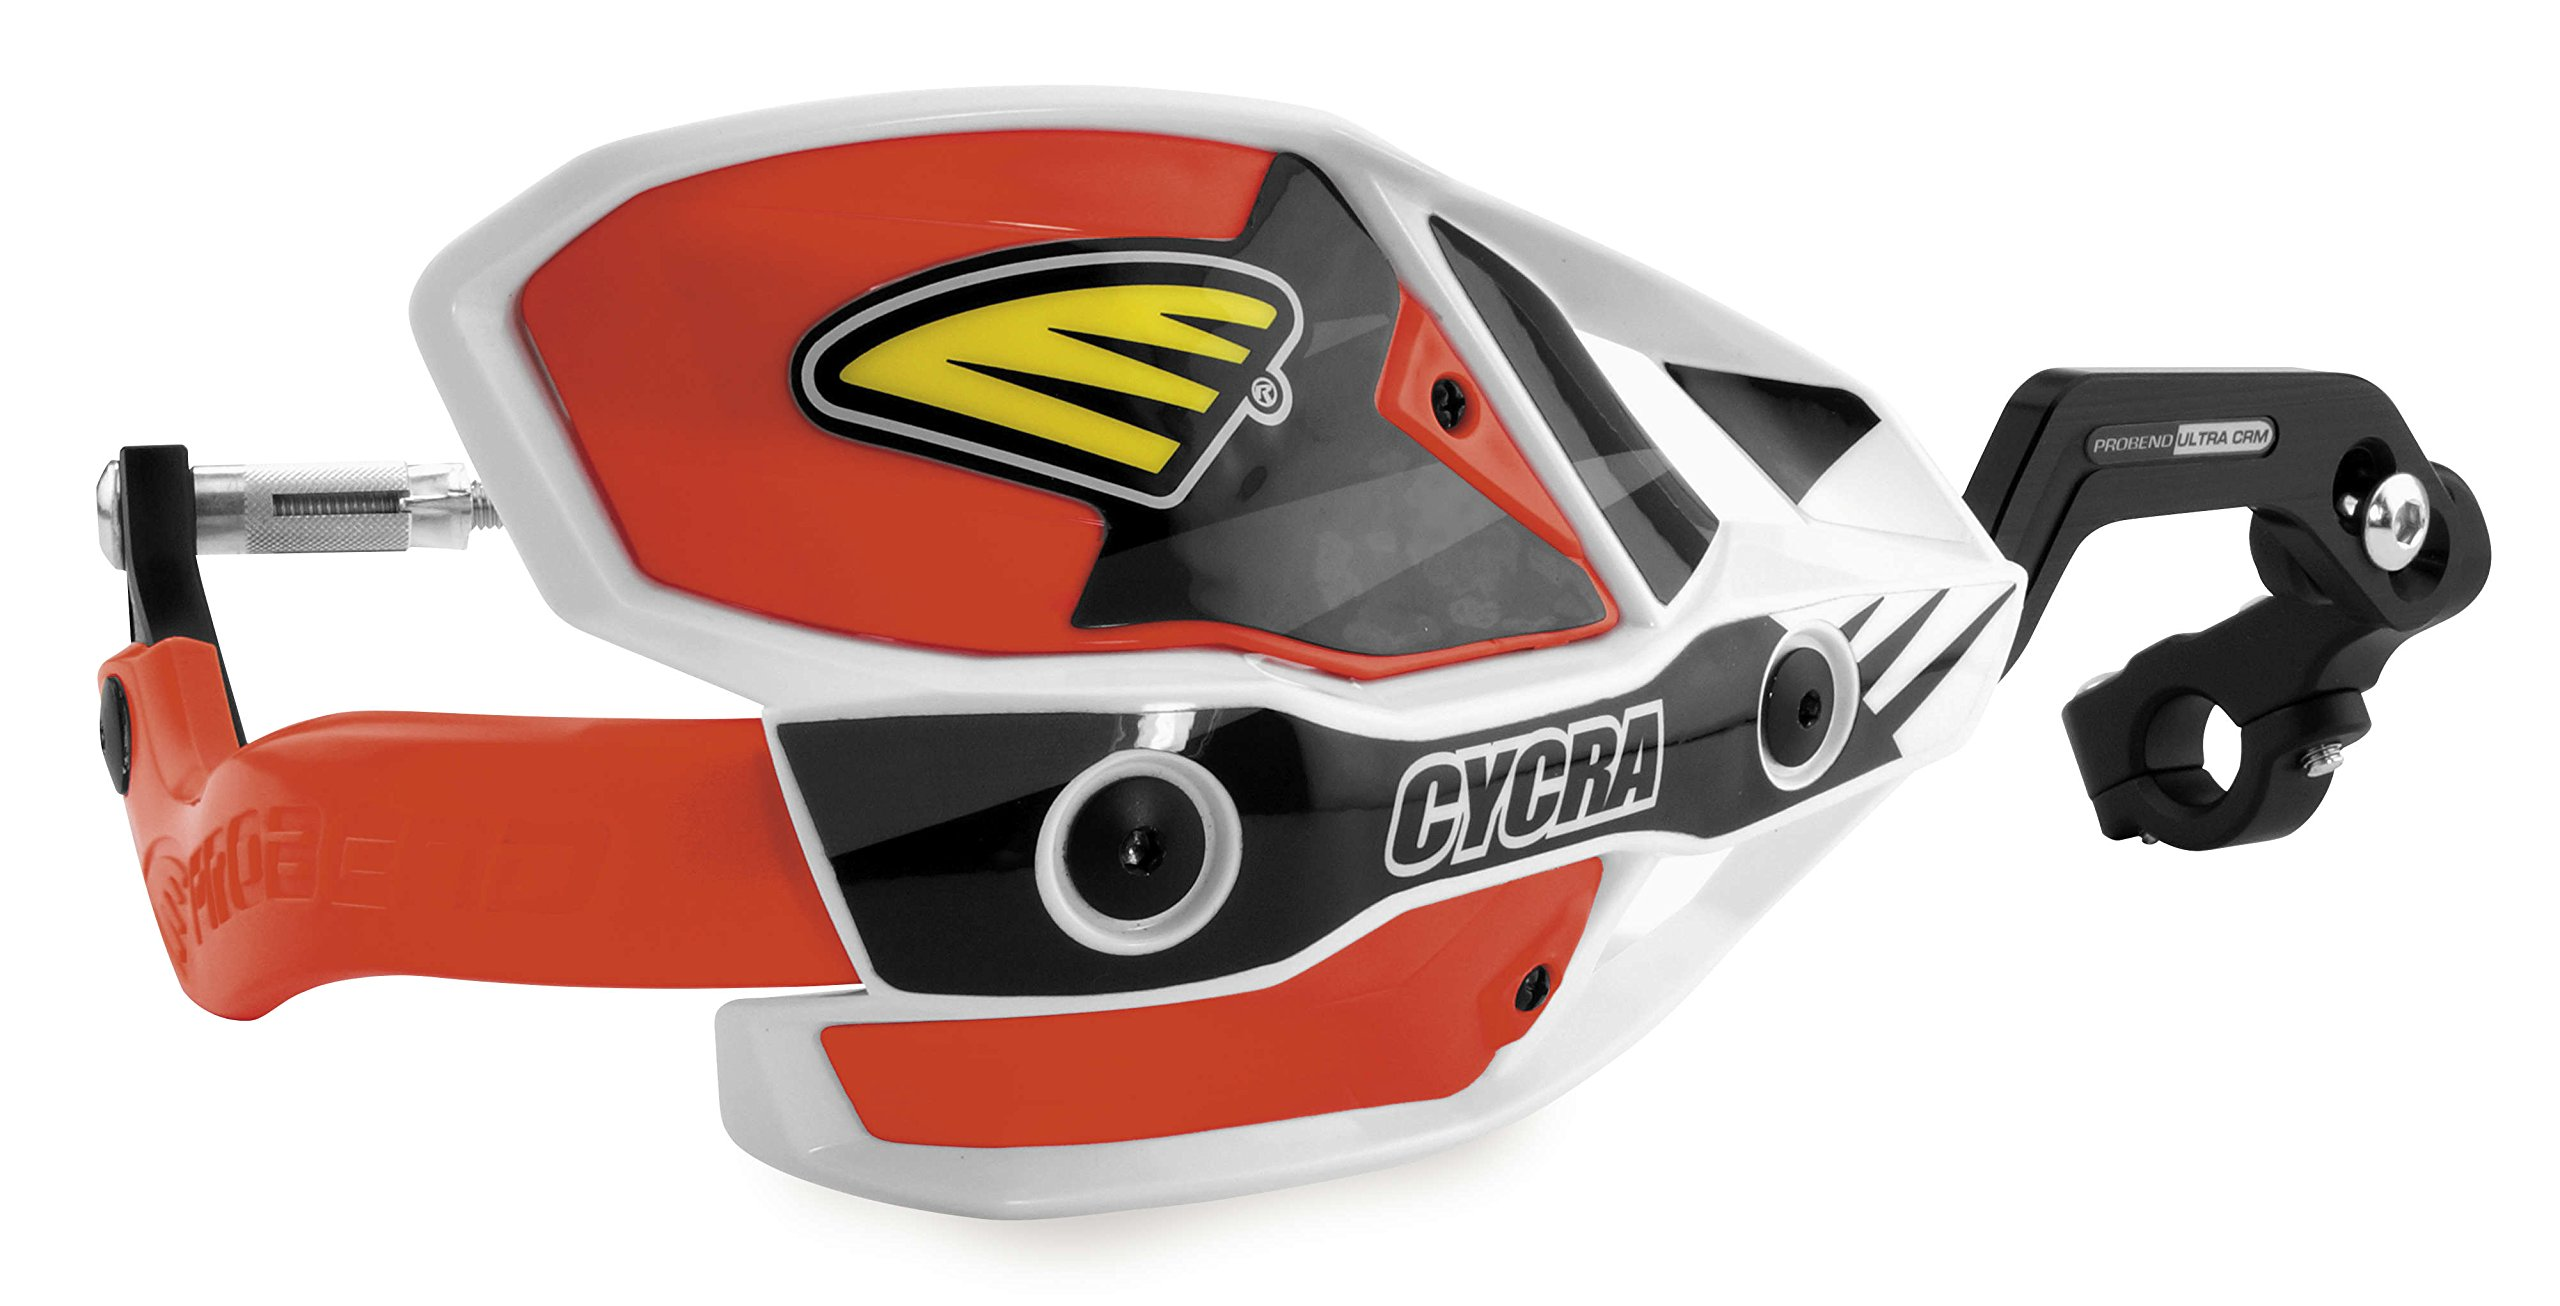 Cycra 1CYC-7408-33X Ultra ProBend CRM Handguards - 1-1/8in. Clamp - White/Red/Red, Color: Red